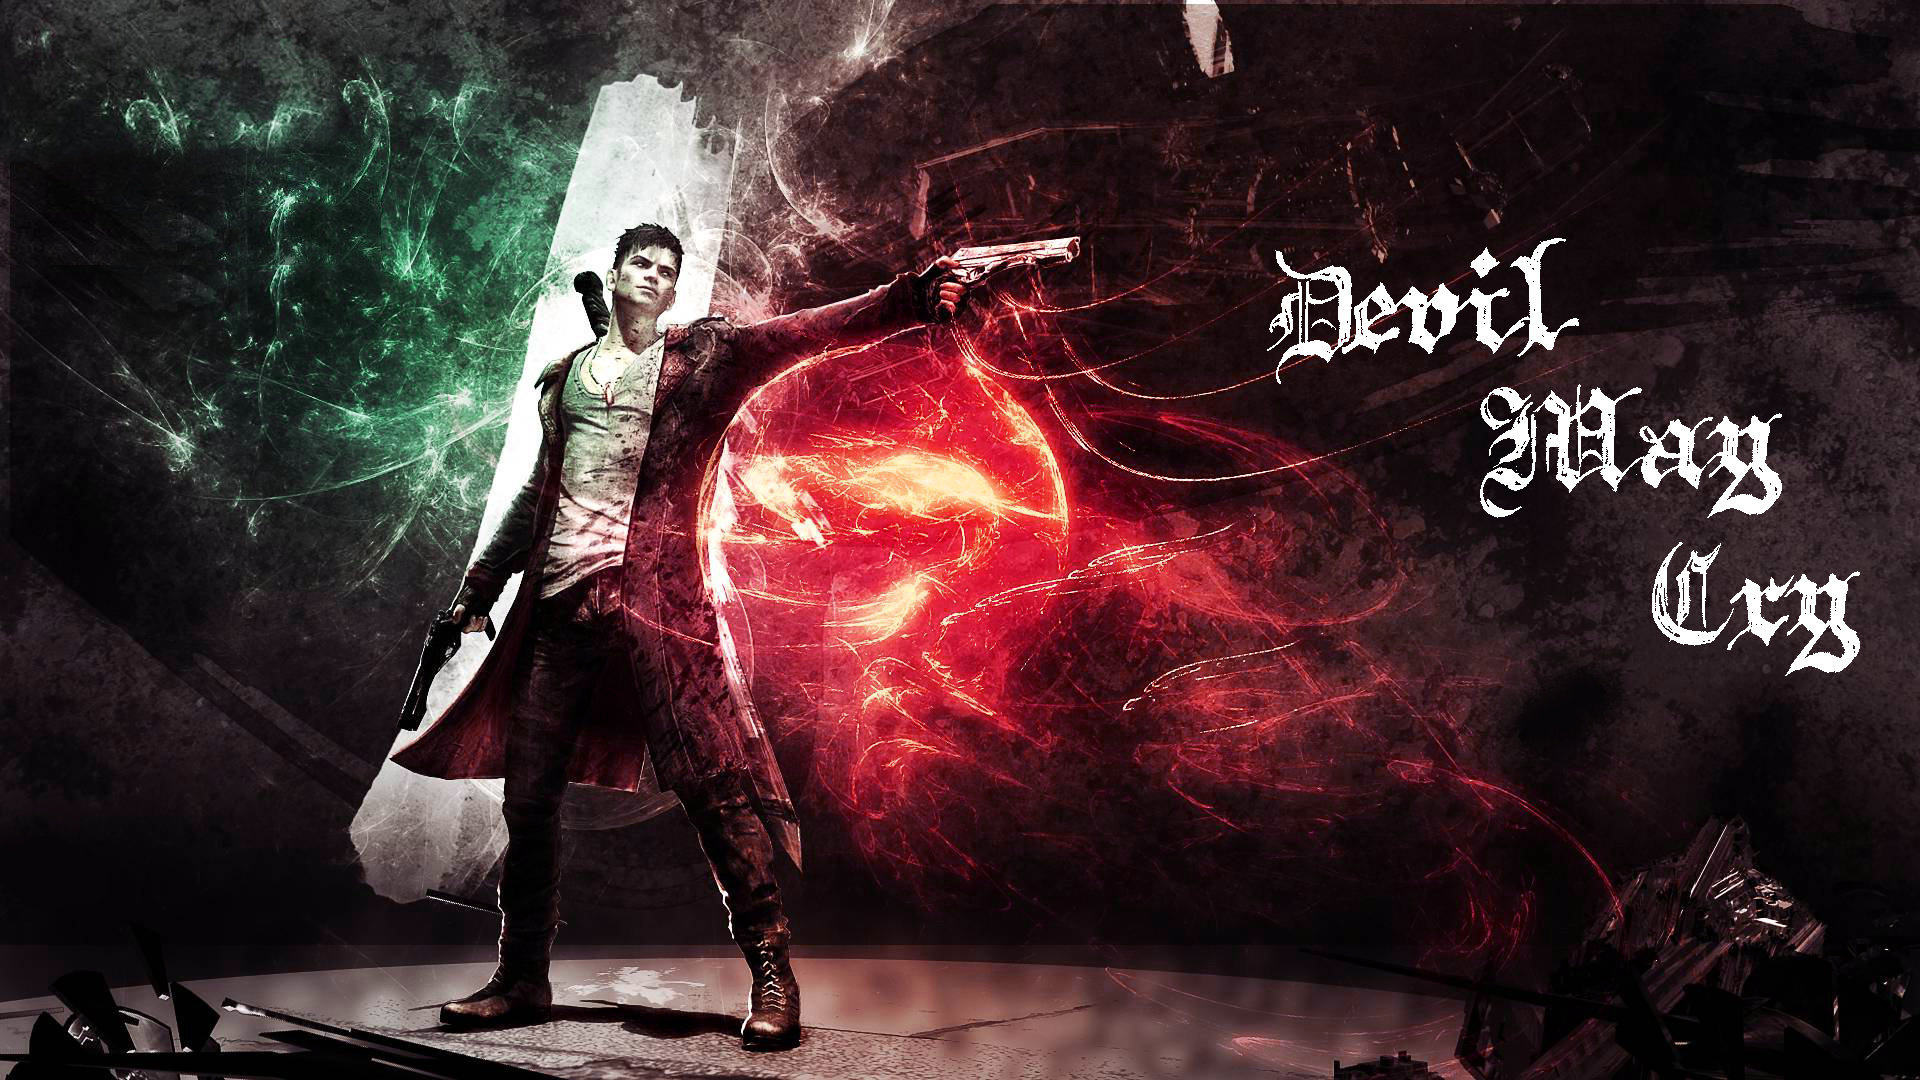 48 Dmc Devil May Cry Wallpaper On Wallpapersafari